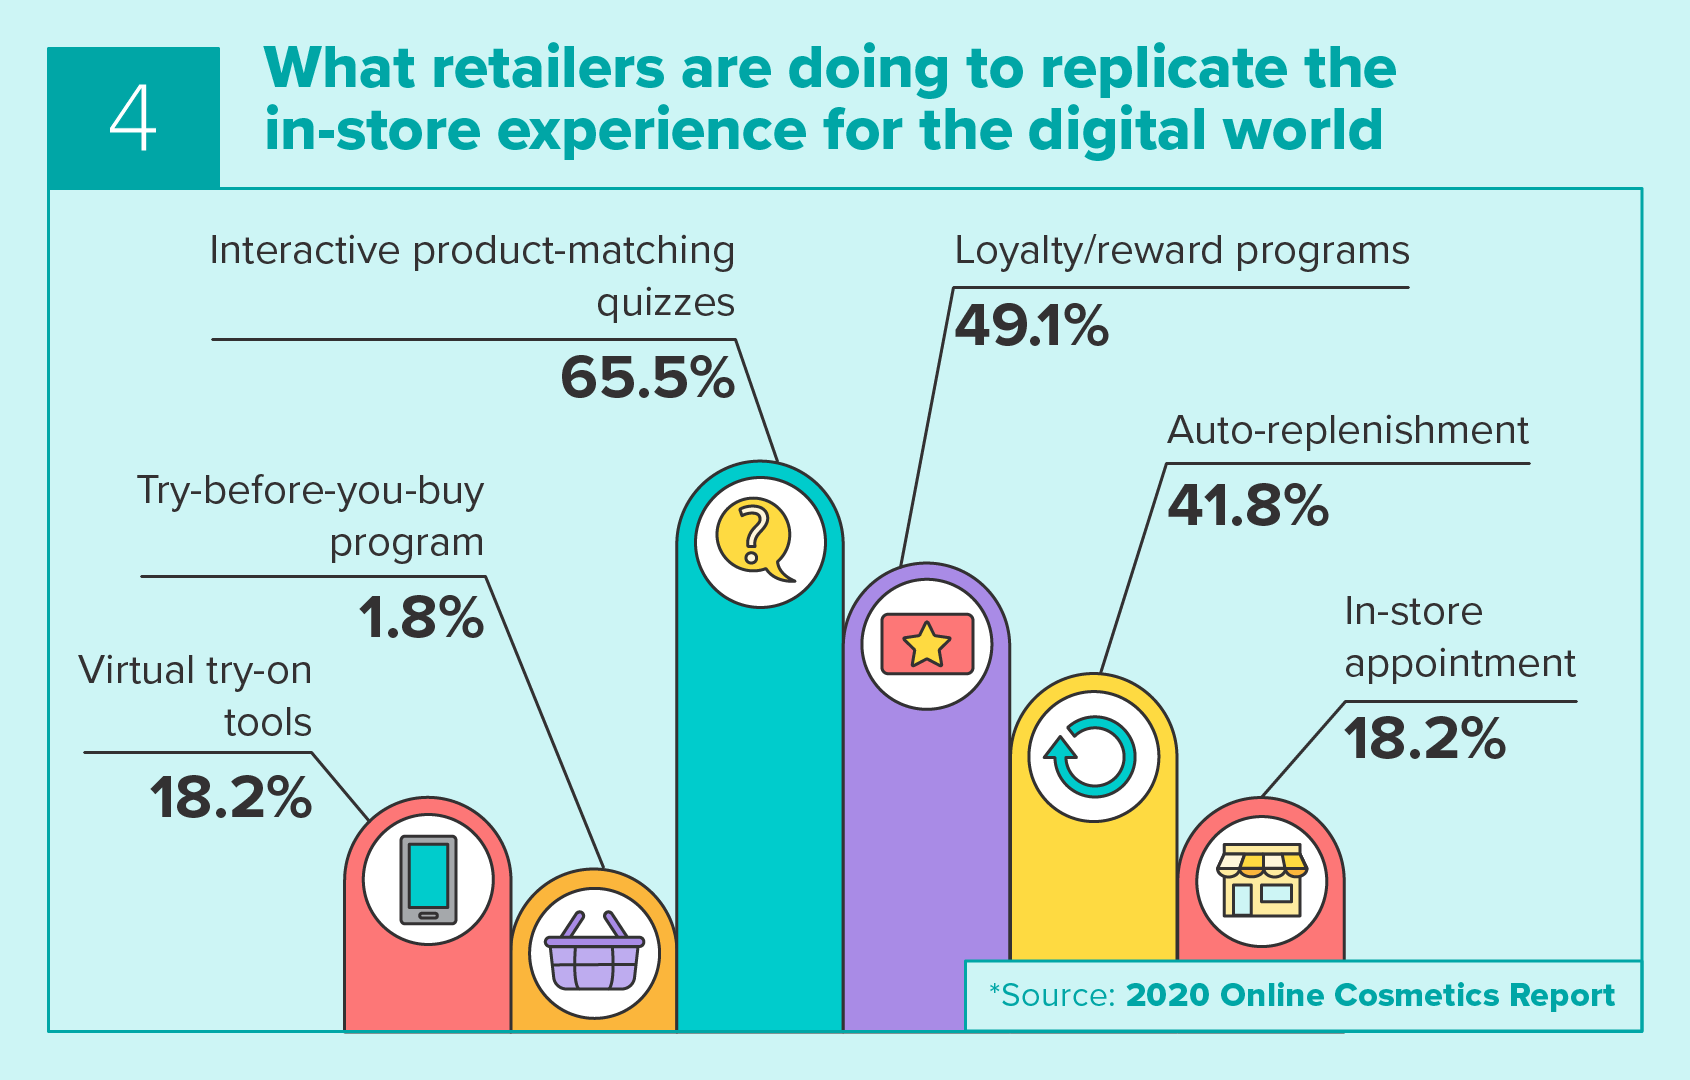 Replicating the In-store Experience for the Digital World